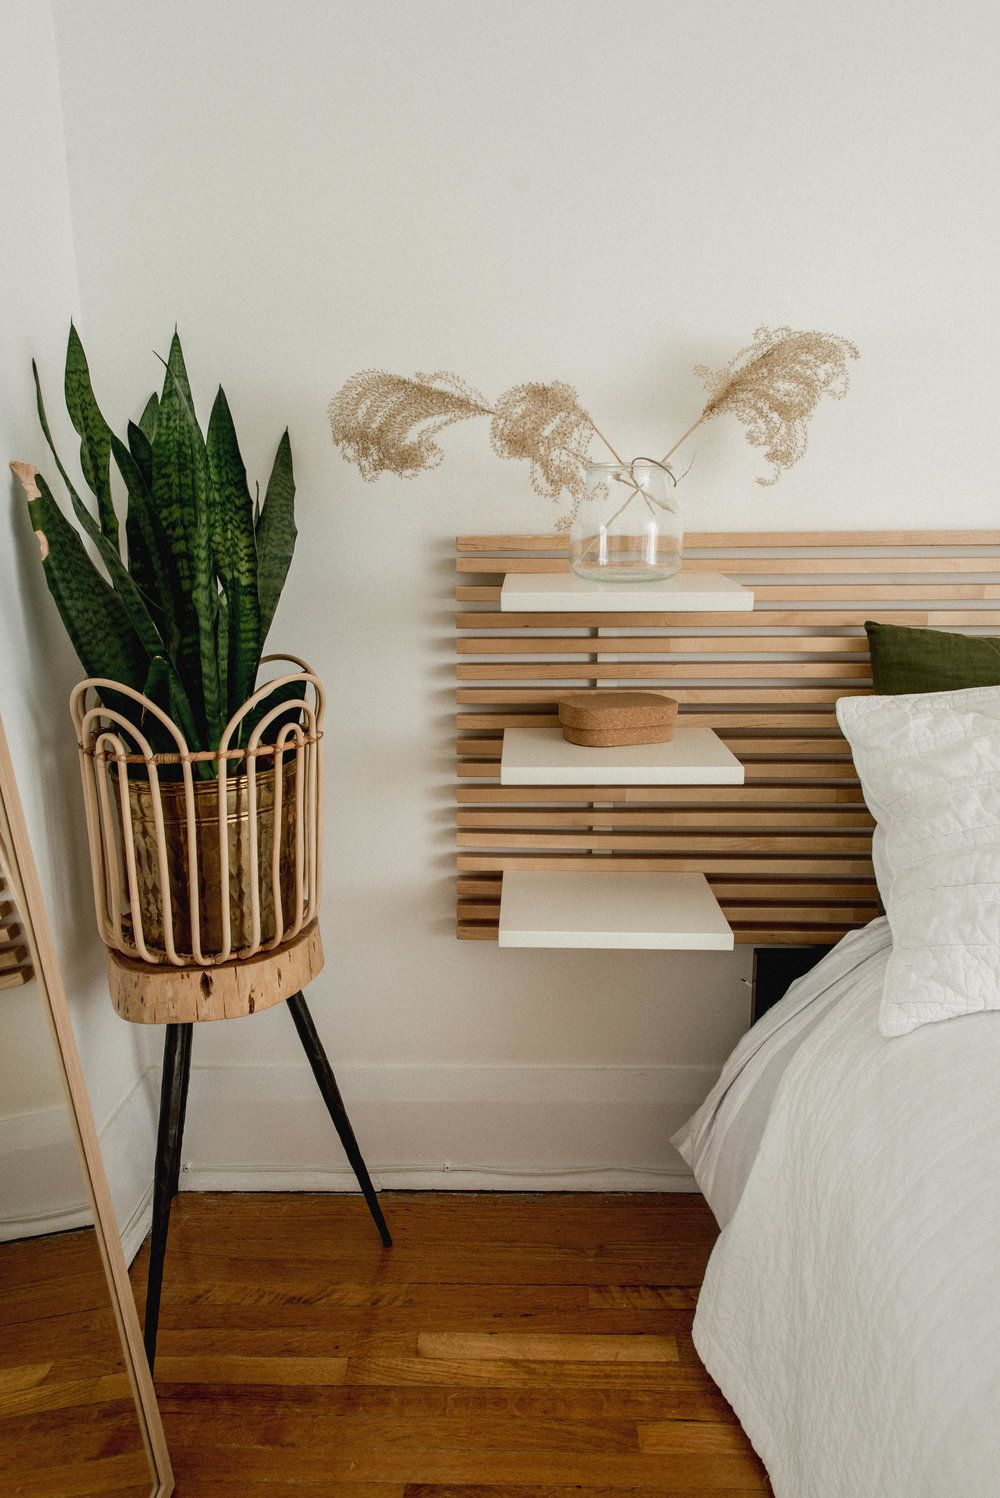 An alternative to bedside table: headboard with built-in shelves